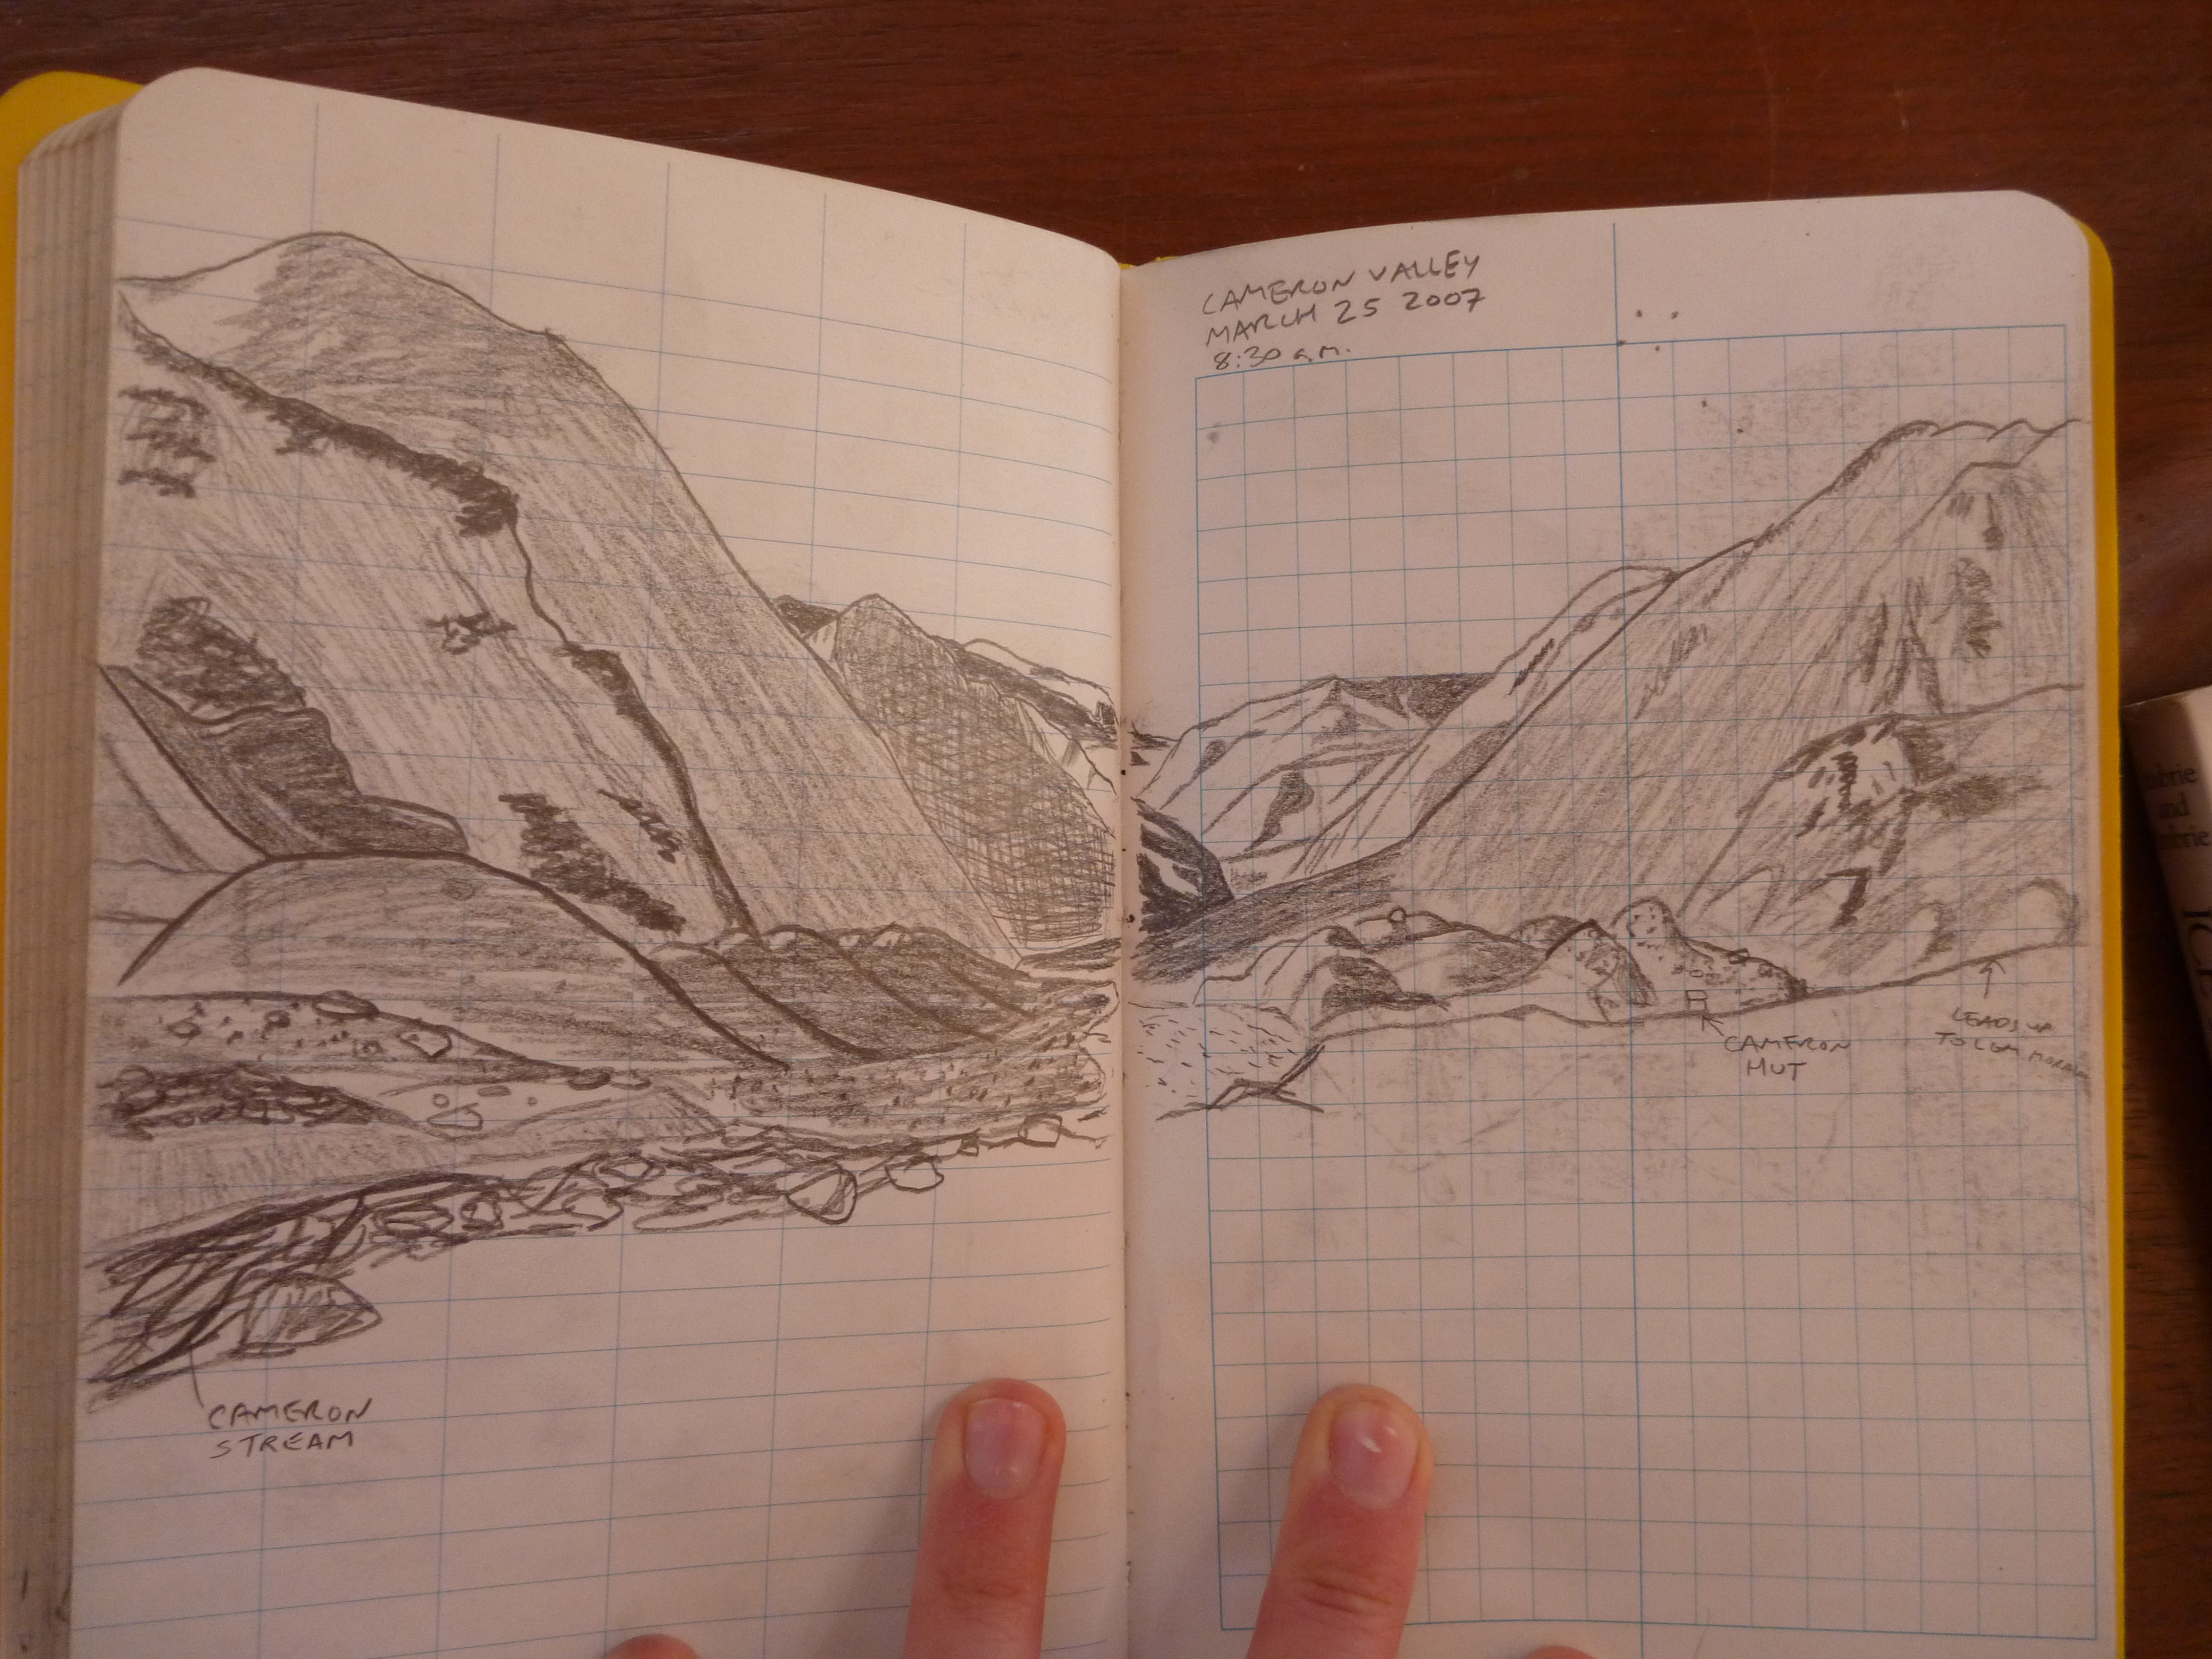 4320x3240 Art And Geology Rock Paper Glacier!